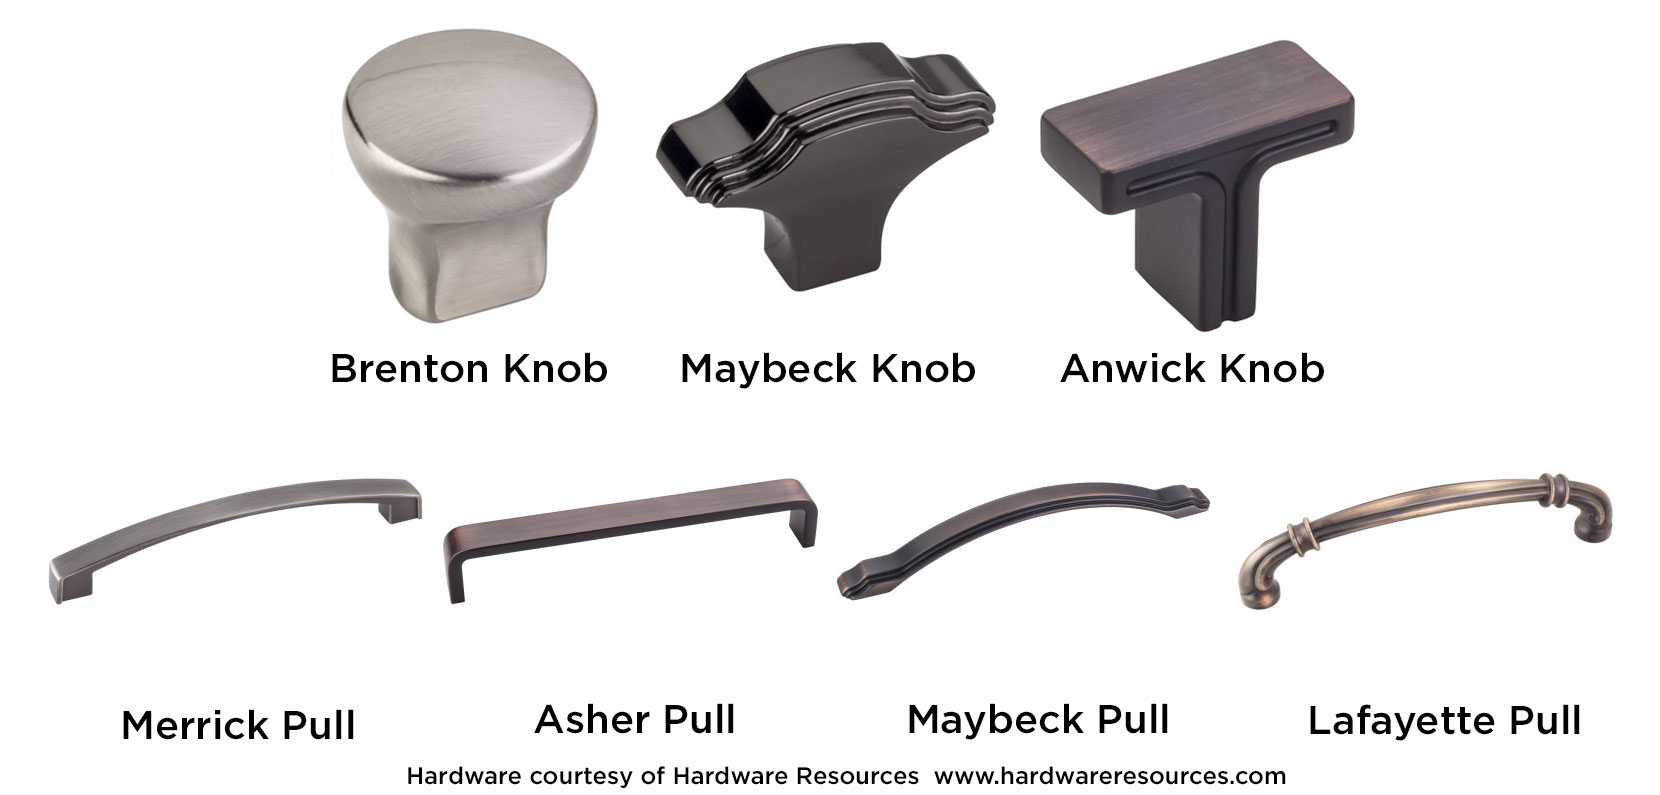 Cabinet door hardware placement guidelines taylorcraft for Small door knobs and handles